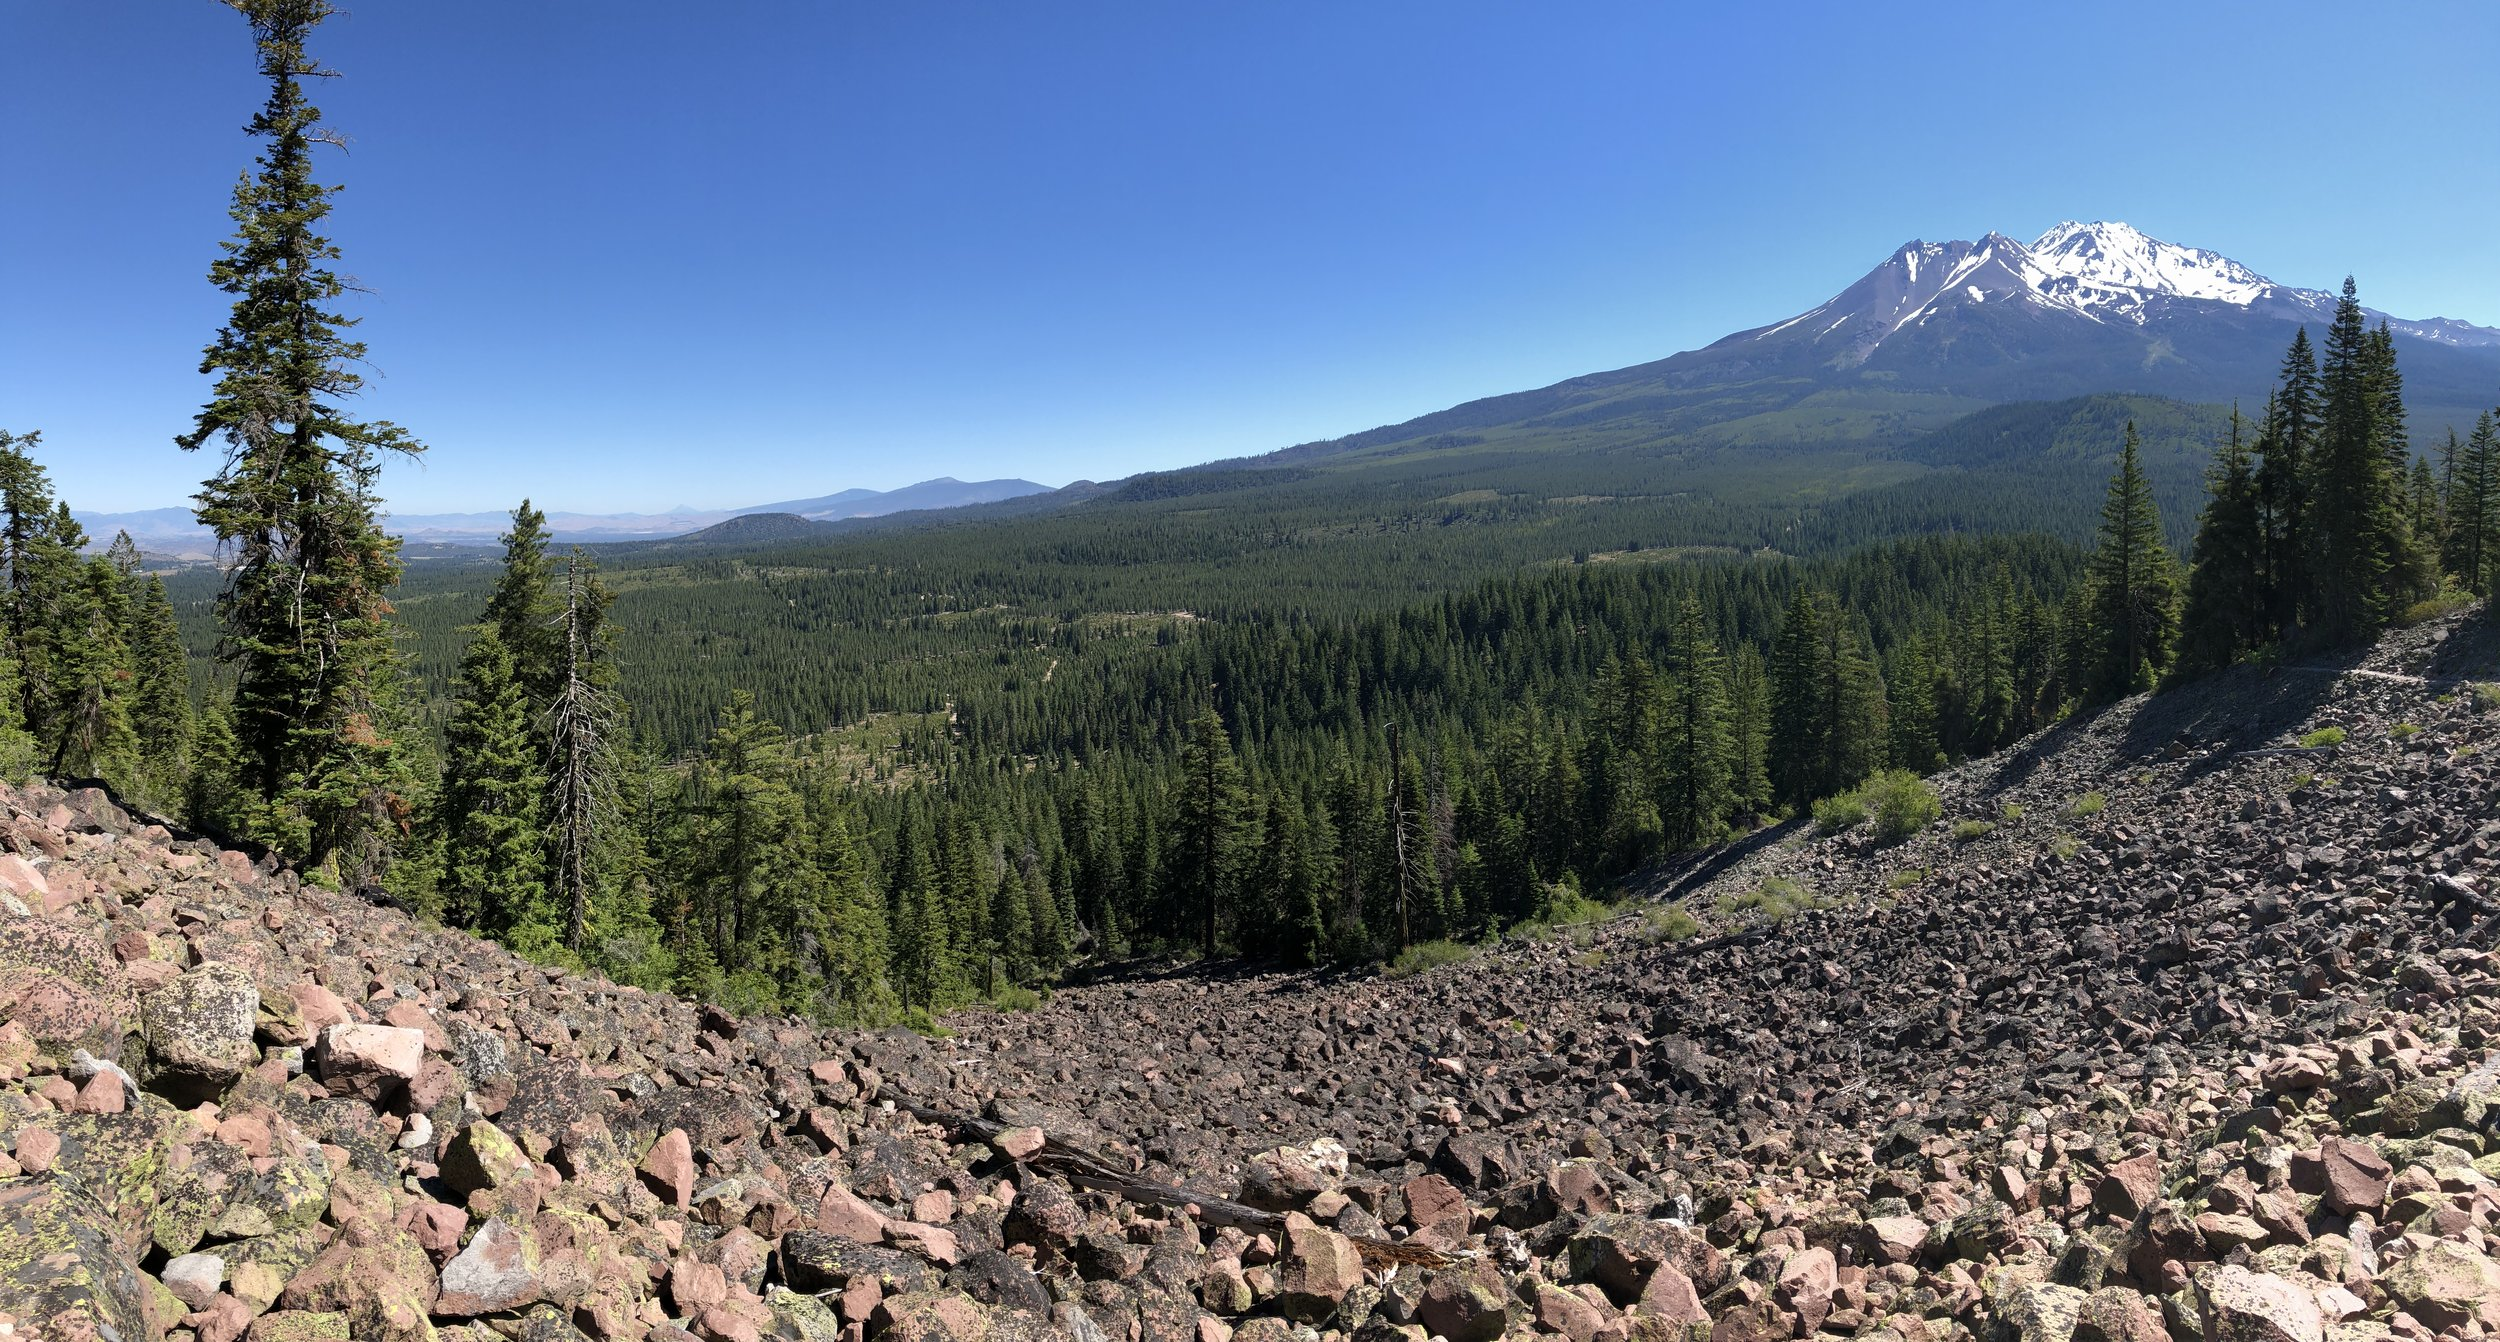 Mt. Shasta from the trail up Black Butte.